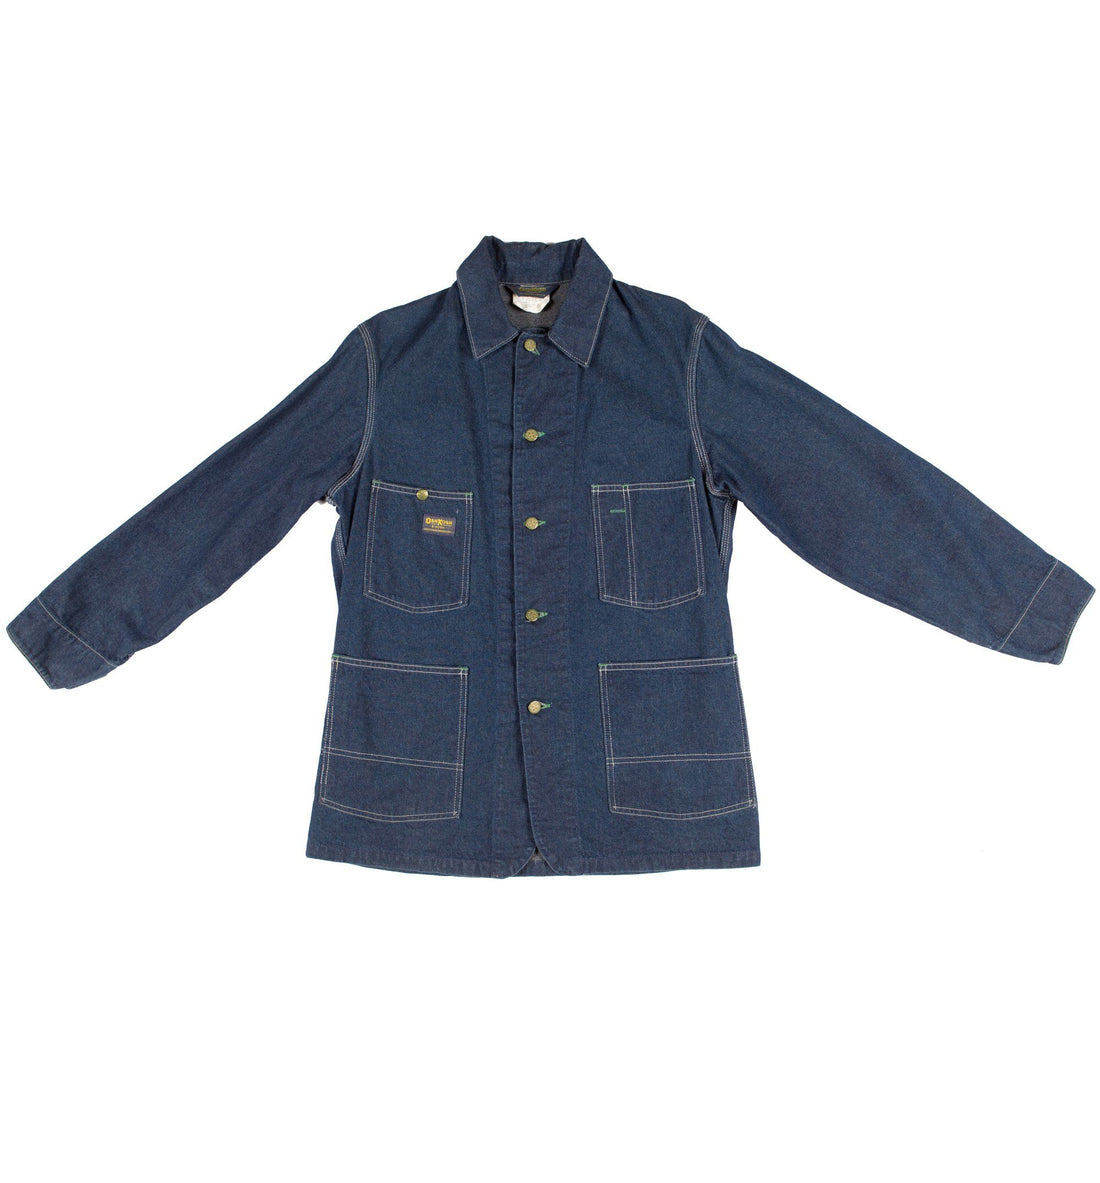 751d2a1a90d ... 40 s Osh Kosh Chore Barn Indigo Denim Jacket - Vintage - Iron and Resin  ...